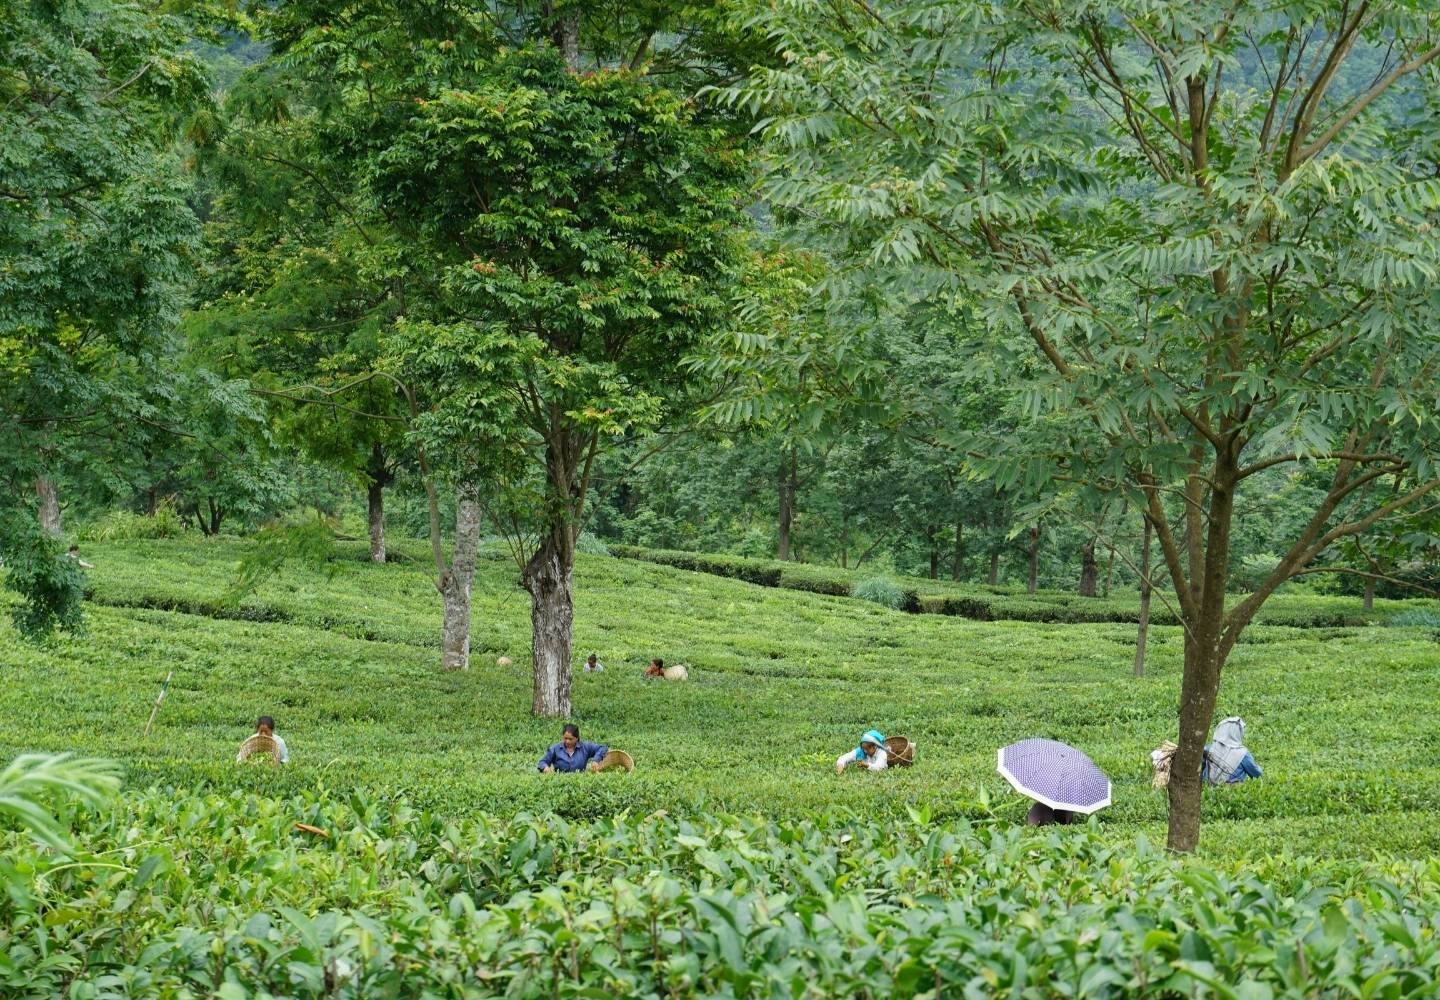 Glorious green tea fields in Darjeeling, India. There's a scattering of trees, but mostly green tea bushes. There are a few people picking tea in the background, wearing traditional hats.